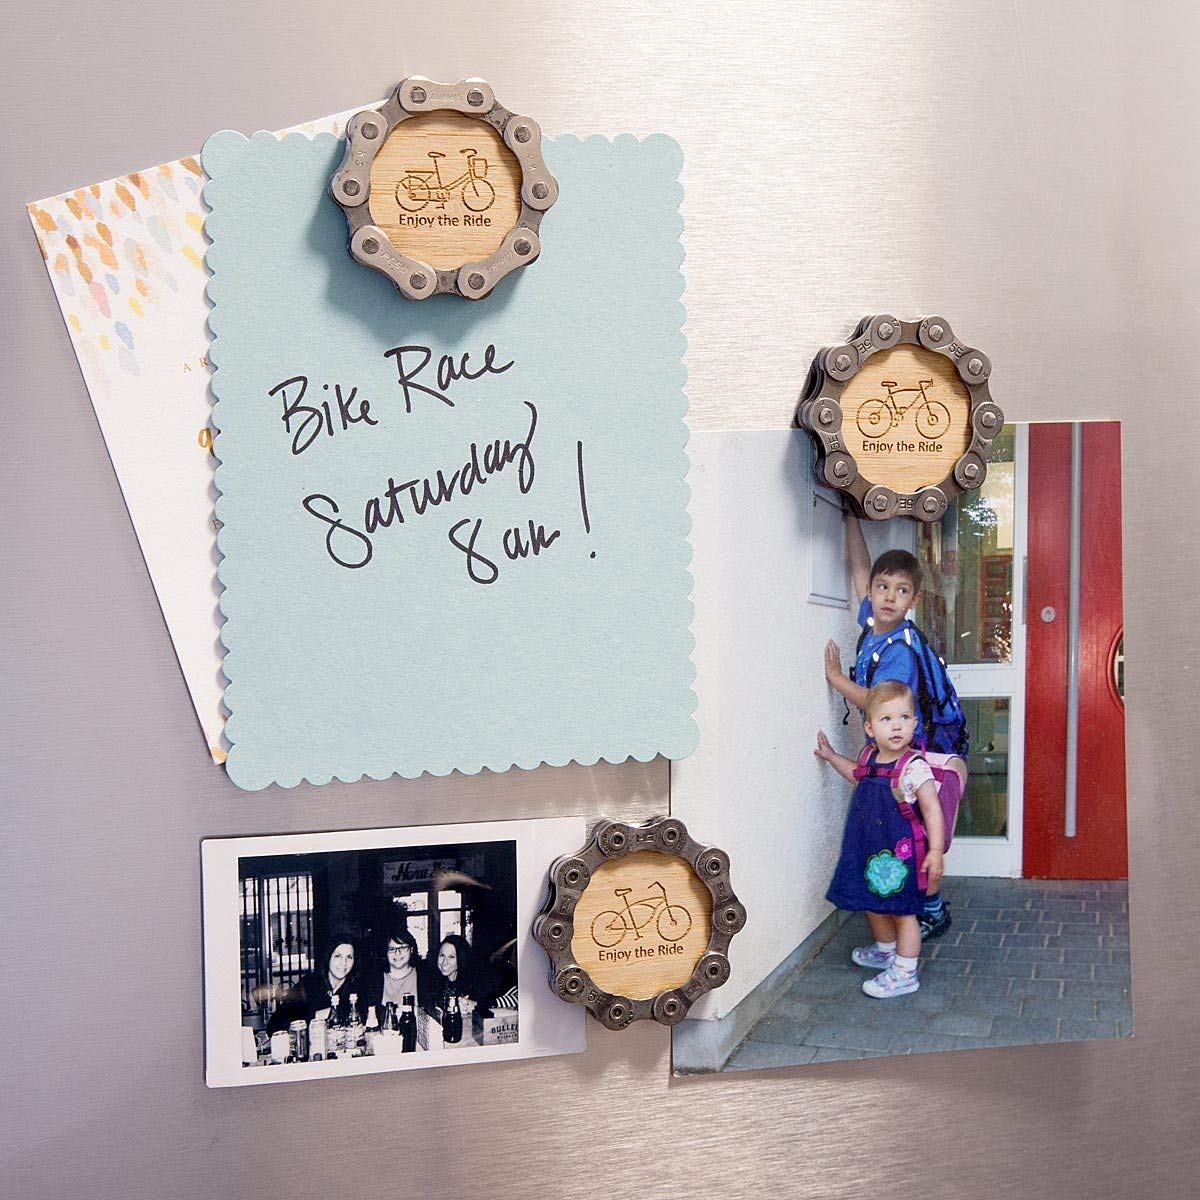 TableTop King Enjoy The Ride Bike Chain Magnets